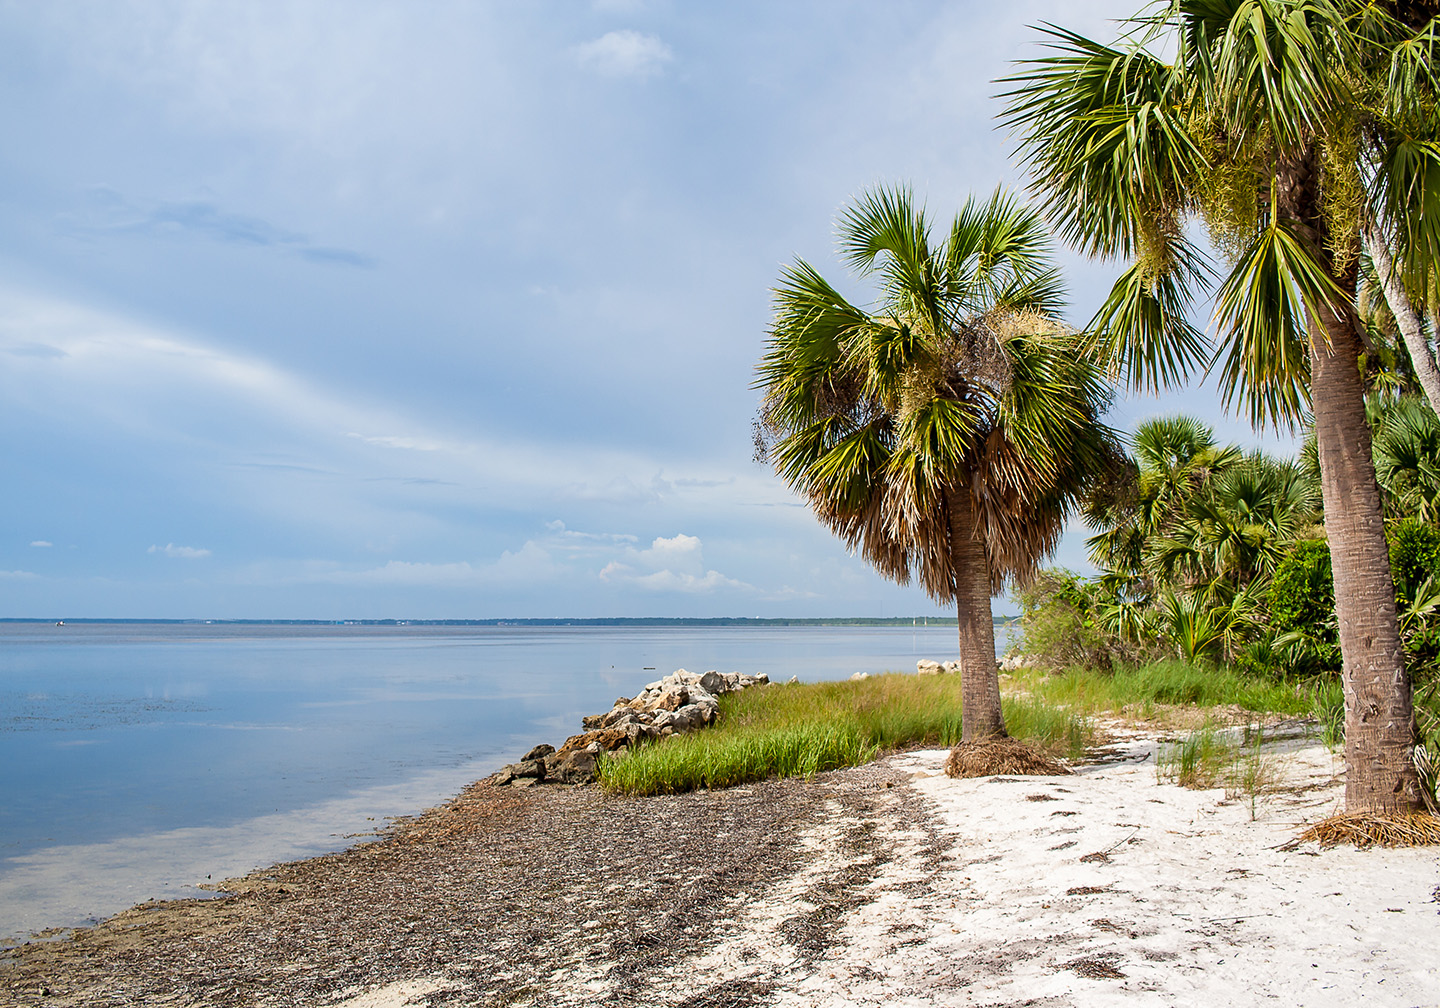 A beach on Florida's Forgotten Coast, with blue sea on the left and palm trees on the right.